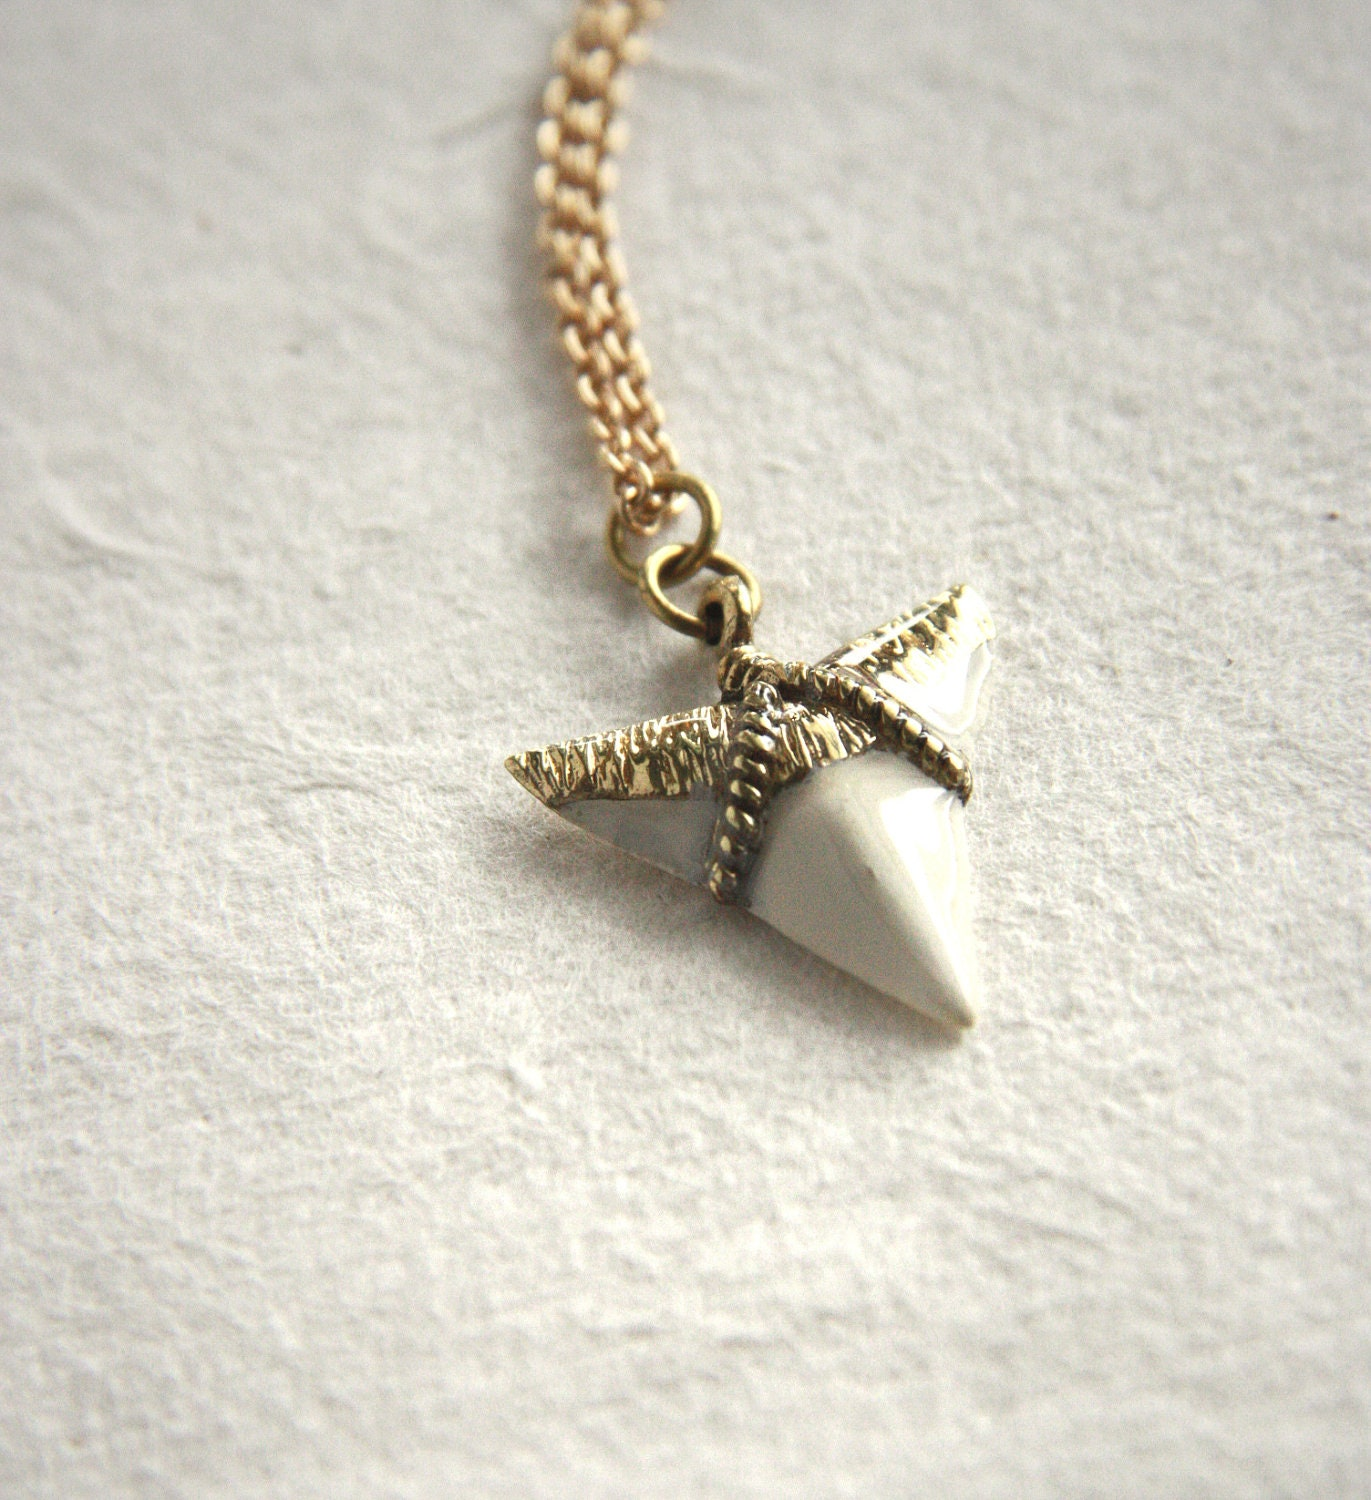 lr cap product rodkin loree shark pendant tooth